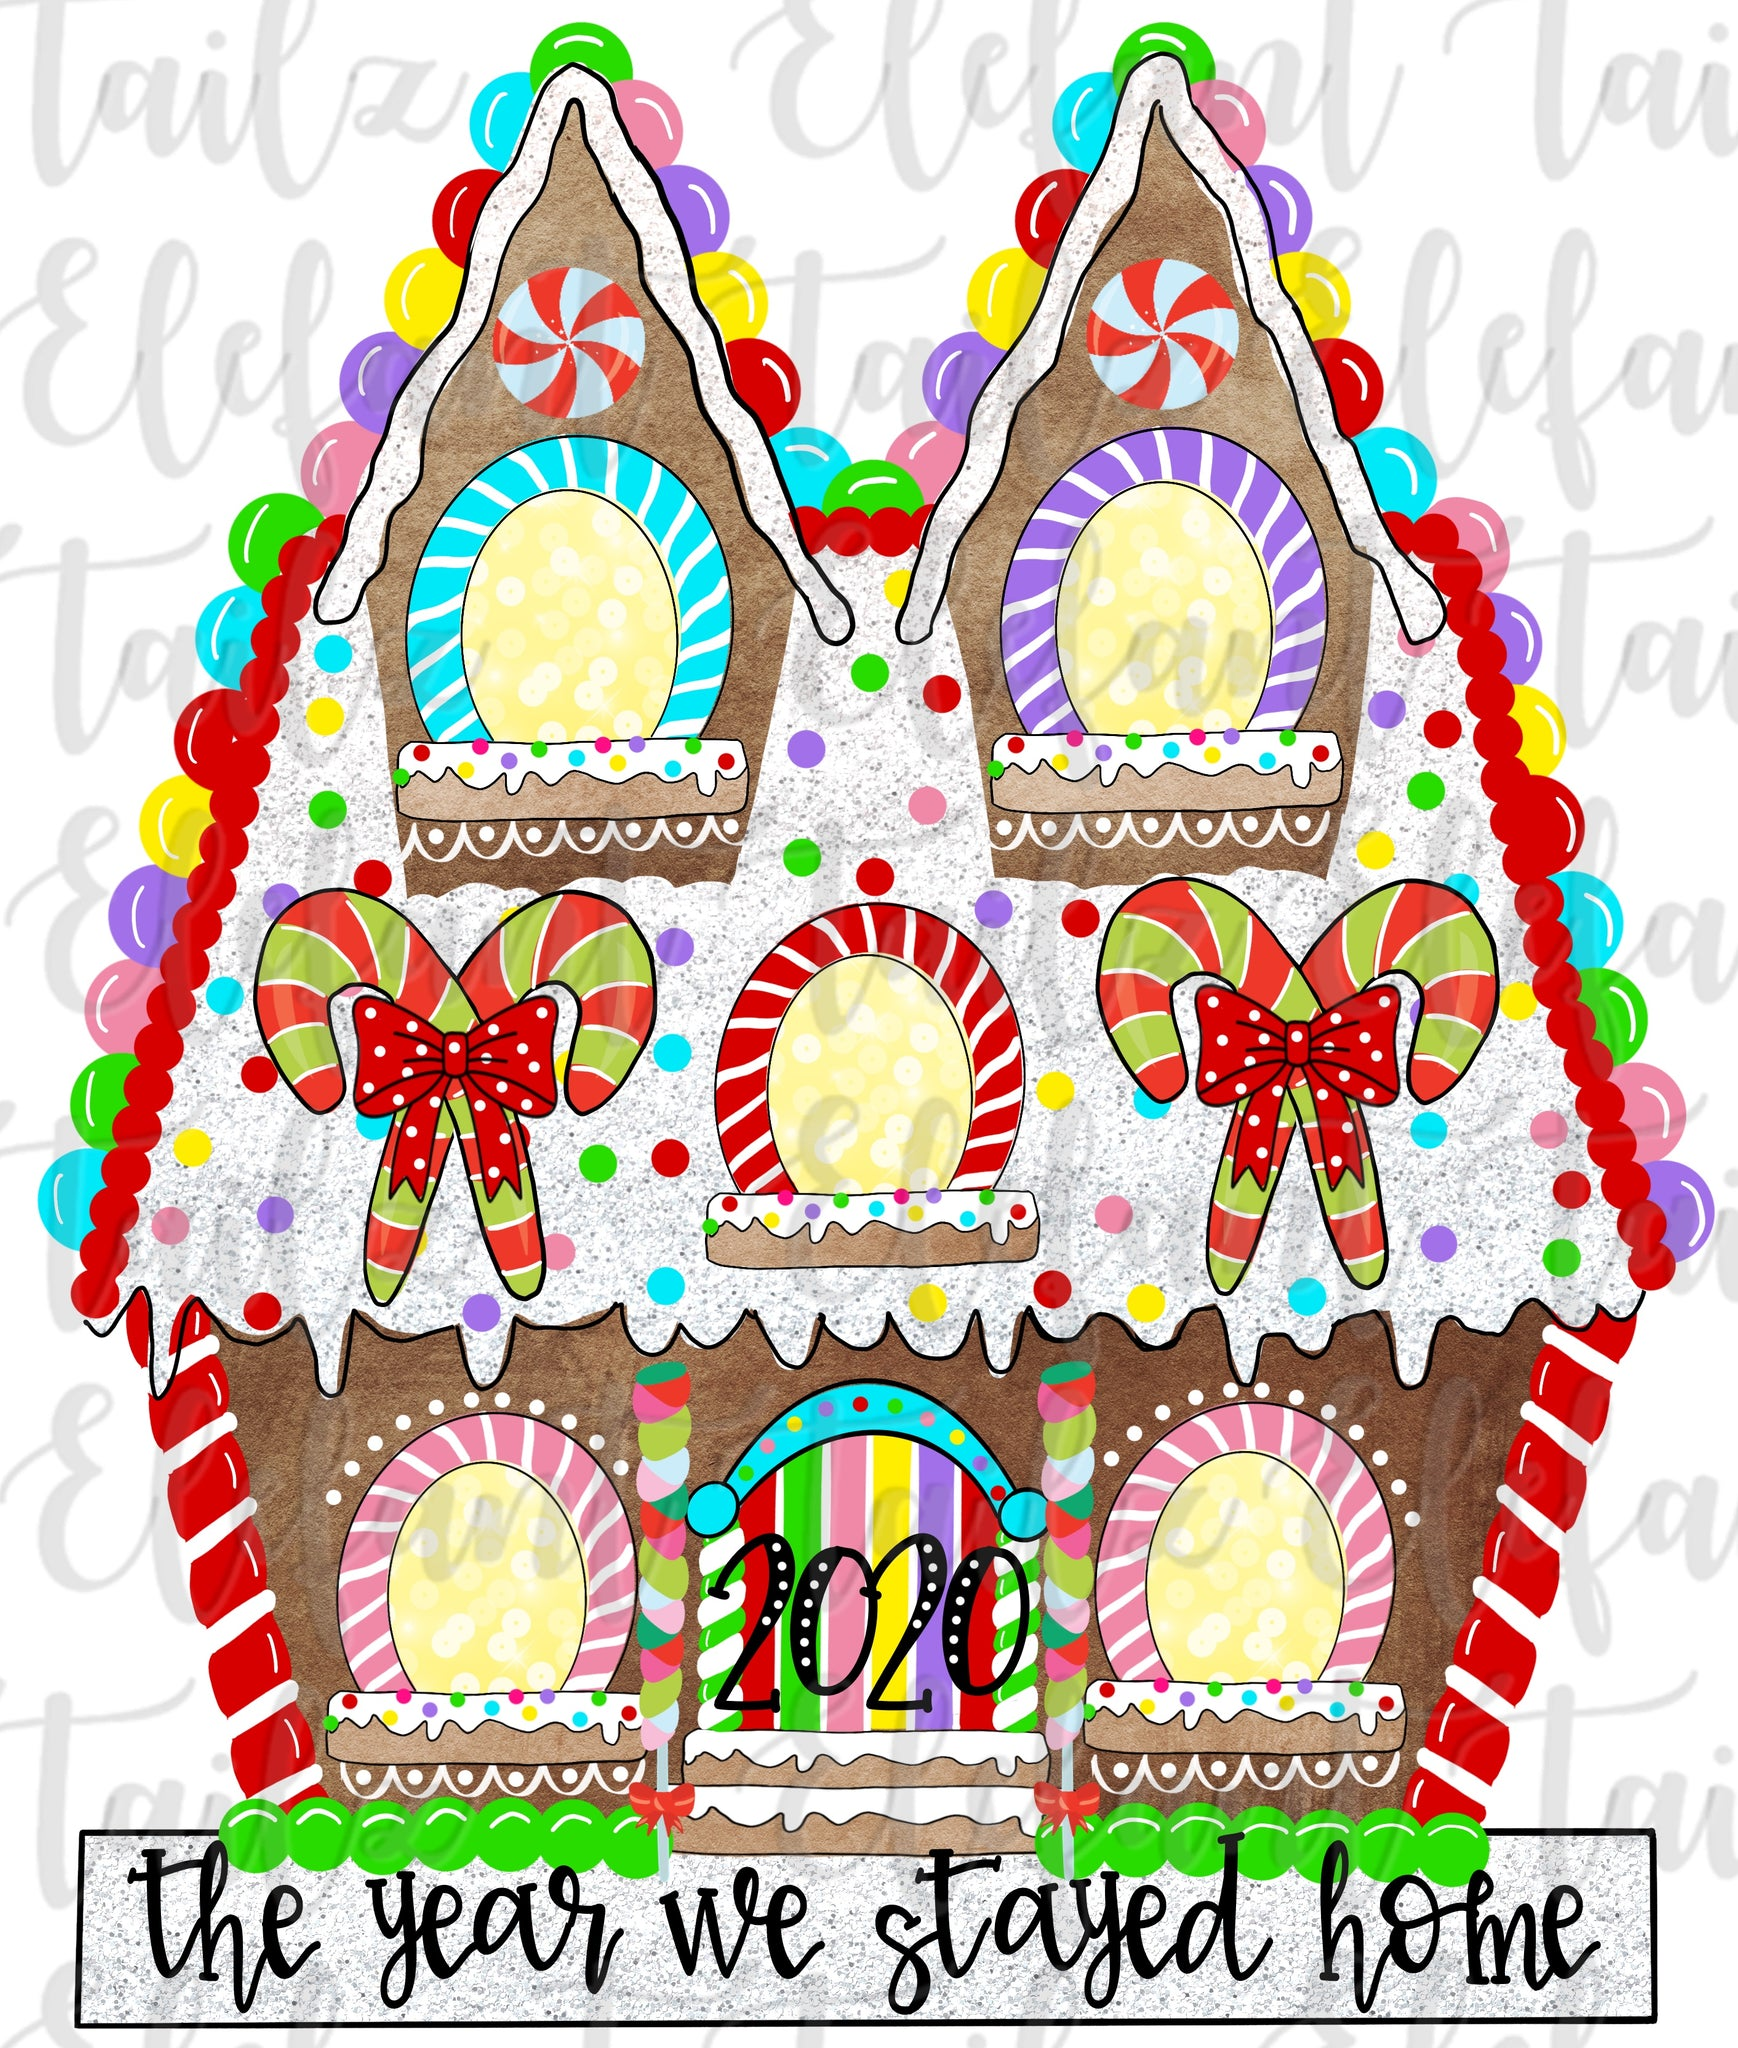 Gingerbread House 5 Windows - 2020